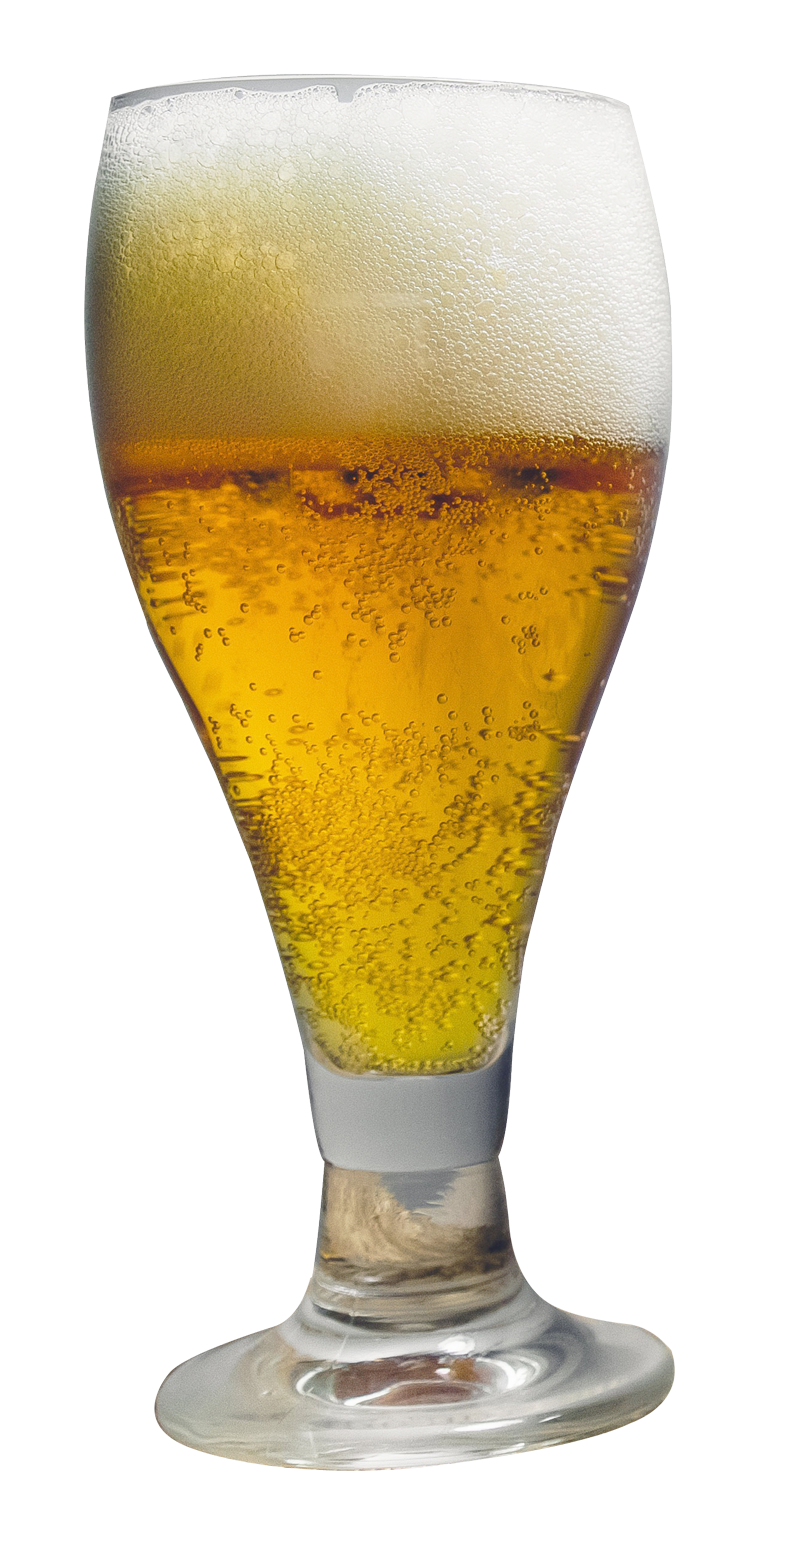 Drink Png - Beer Glass PNG Image